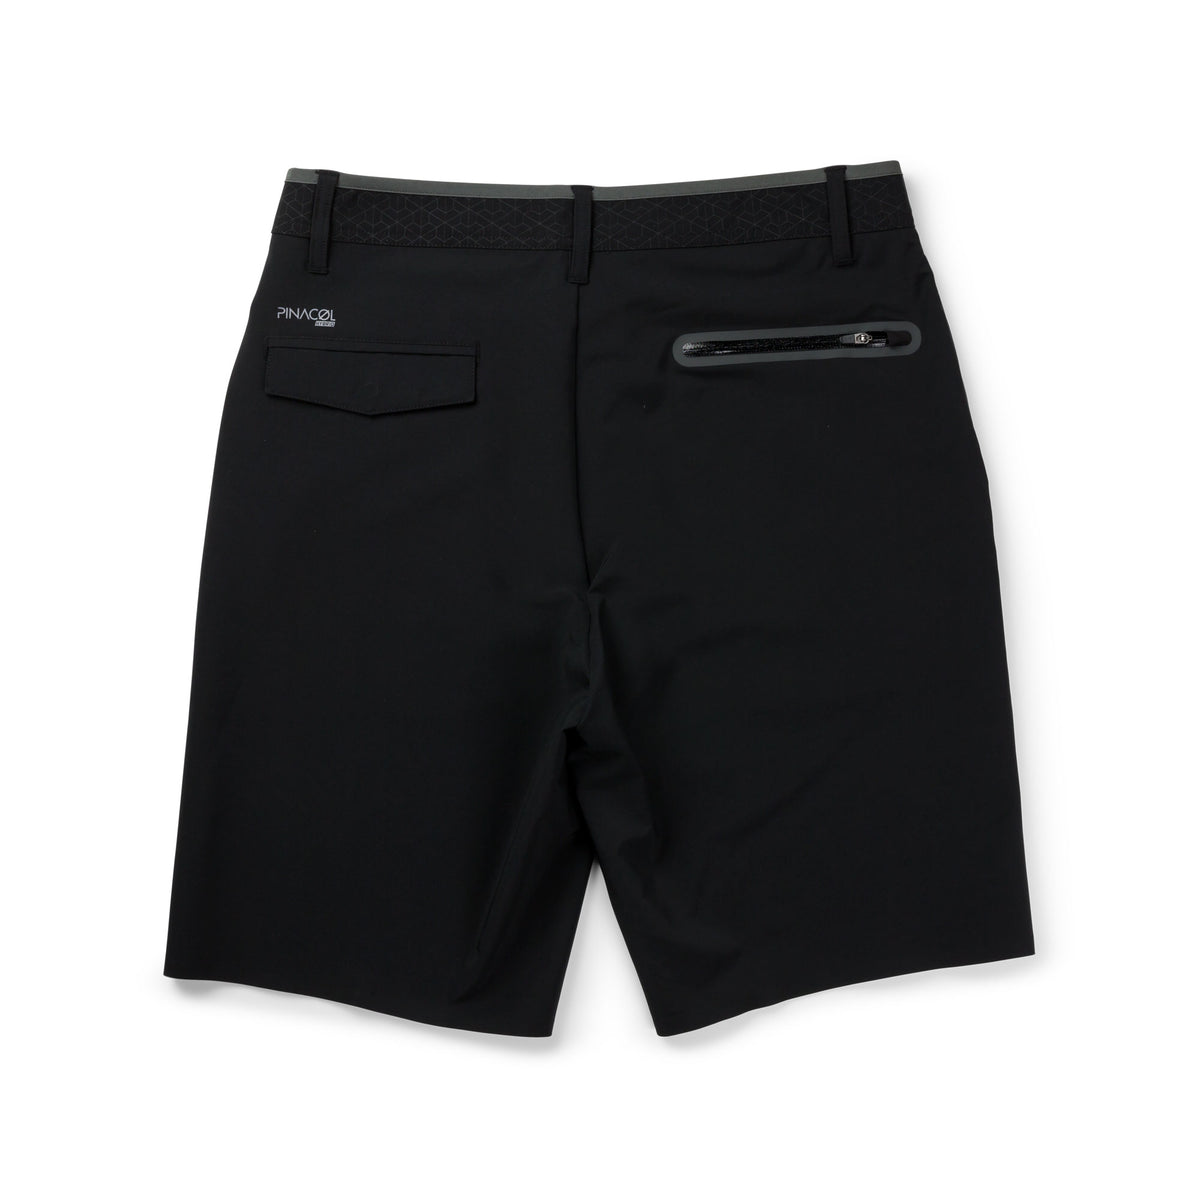 Pinacol Hybrid Fishing Shorts Big Image - 2